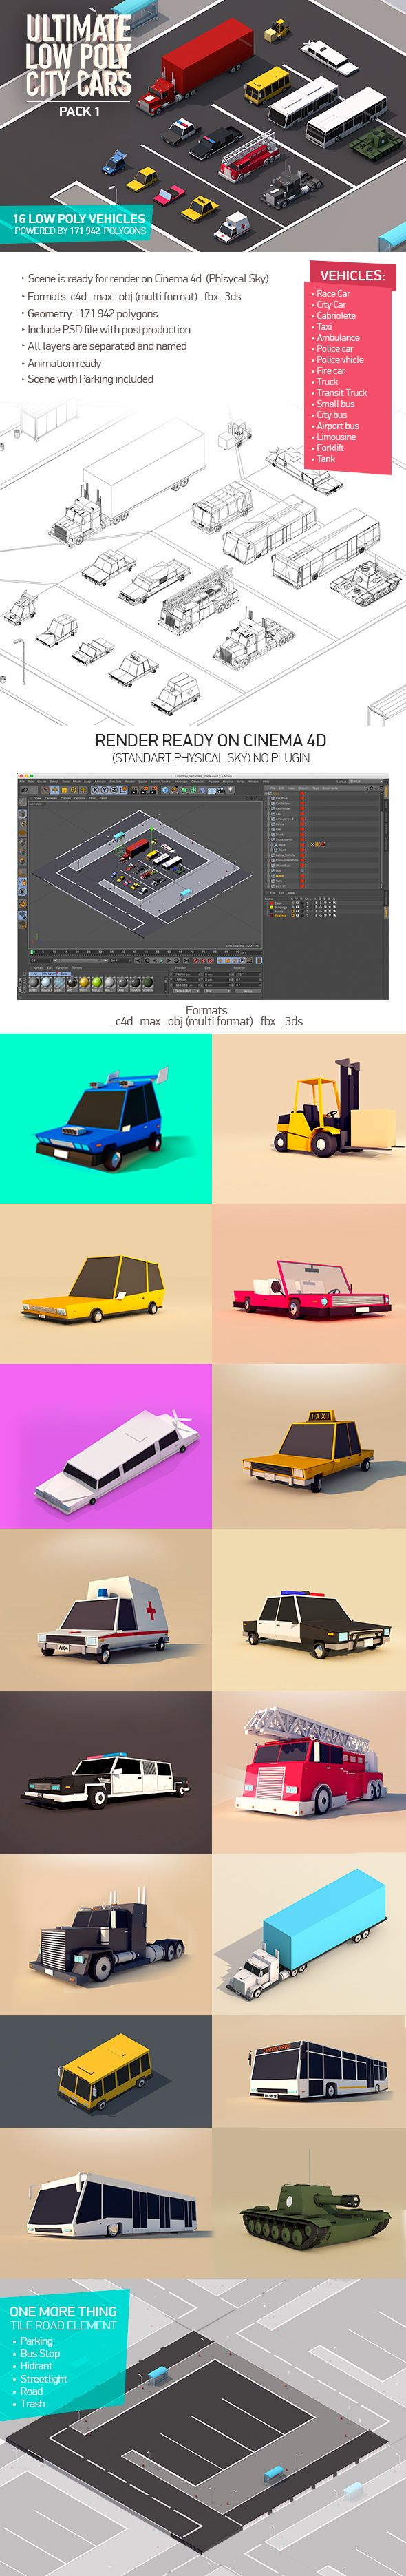 Ultimate Low Poly City Cars Pack 3D Models Design Template #cinema4d #3D #3dDesign Download here: https://3docean.net/item/ultimate-low-poly-city-cars-pack/16699697?ref=yinkira